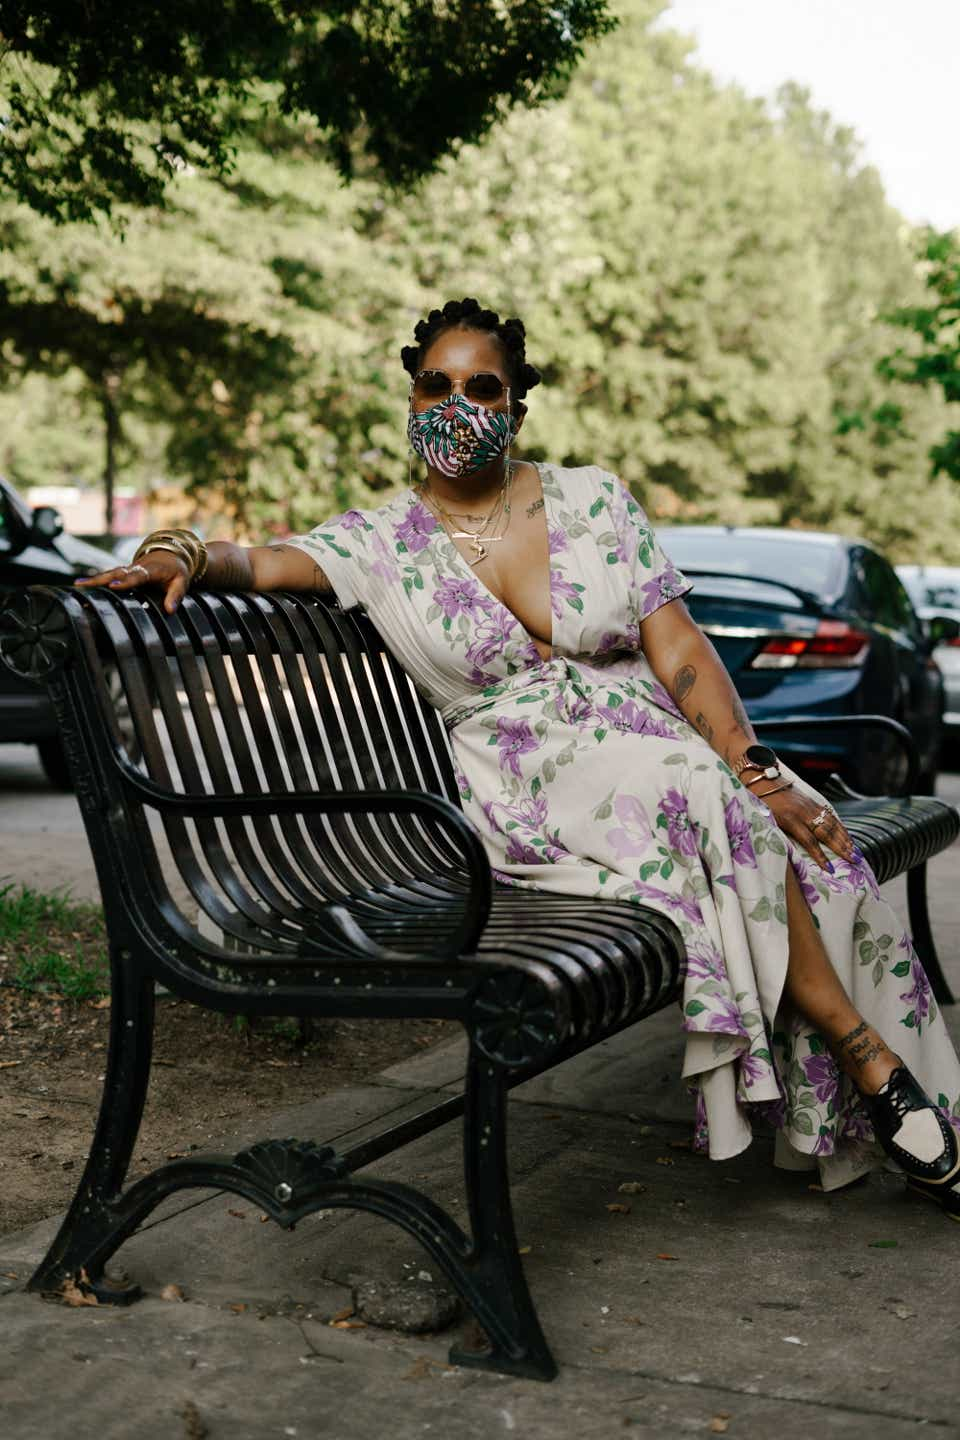 Kwajelyn is sitting on a park bench wearing a cream-colored, V-neck sundress with purple flowers on it. Her mask is patterned with geometric shapes and her shoes are black-and-white loafers.